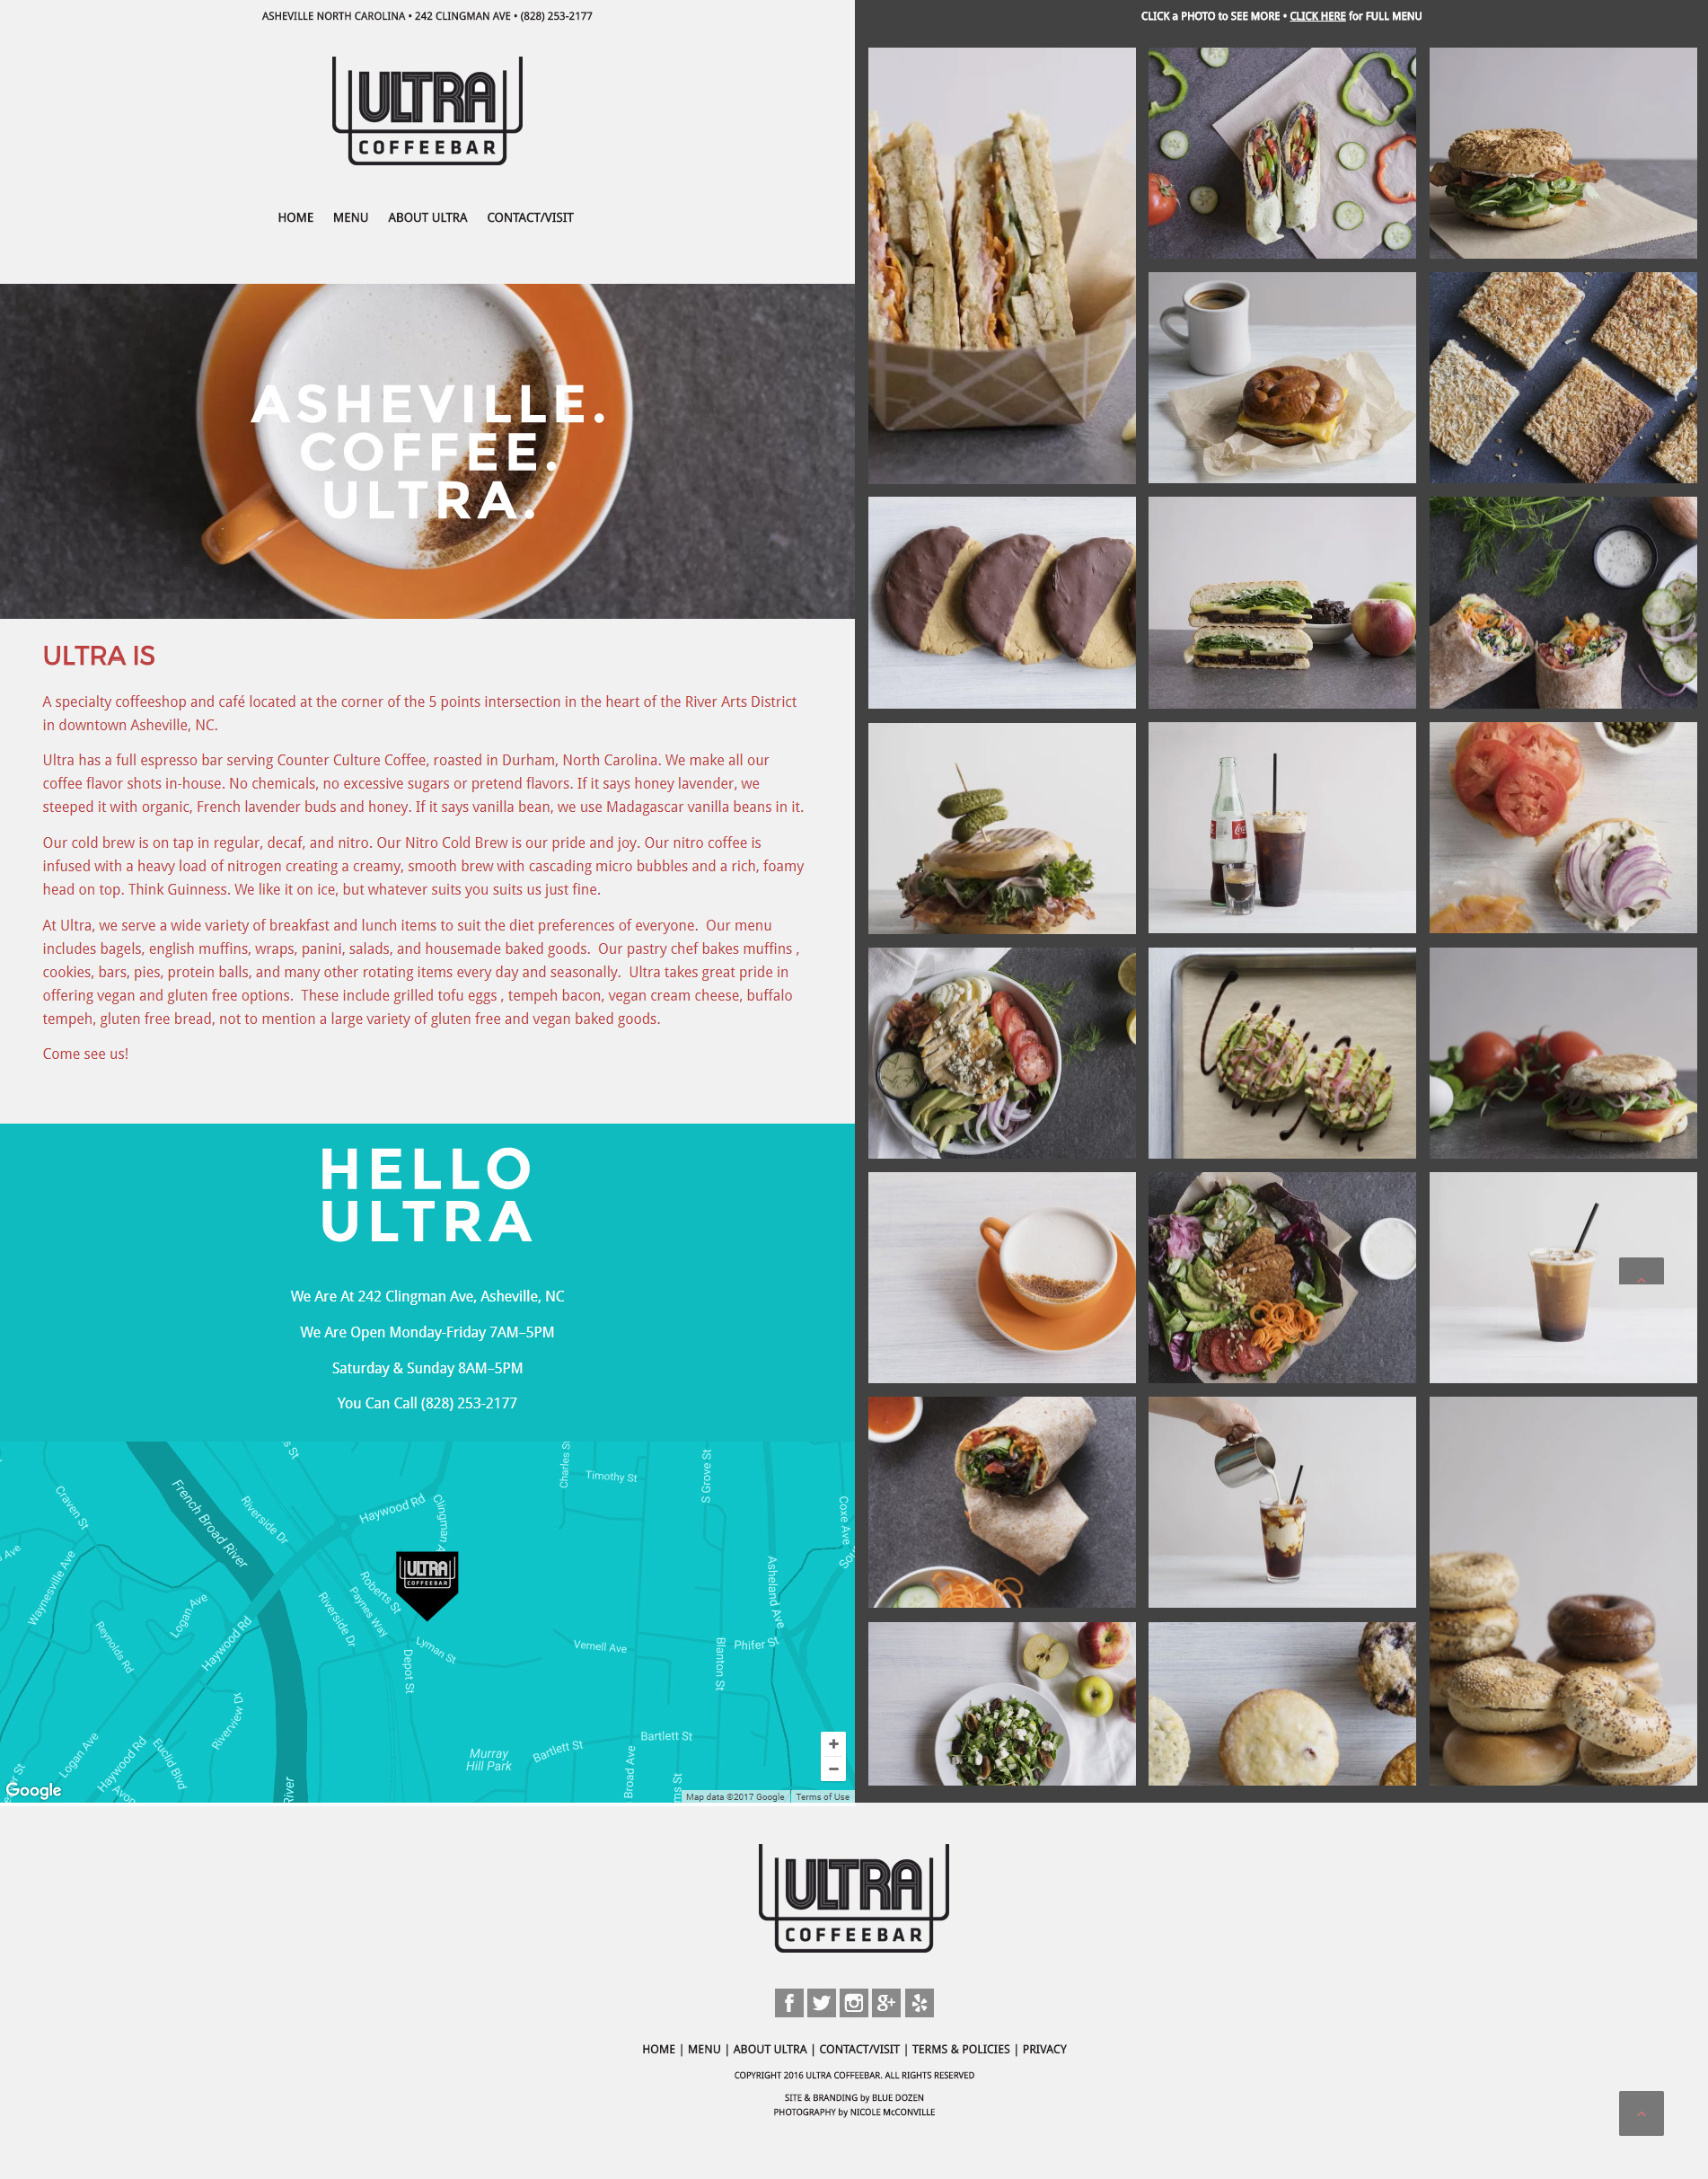 Website Design for Ultra Coffeebar, Asheville NC